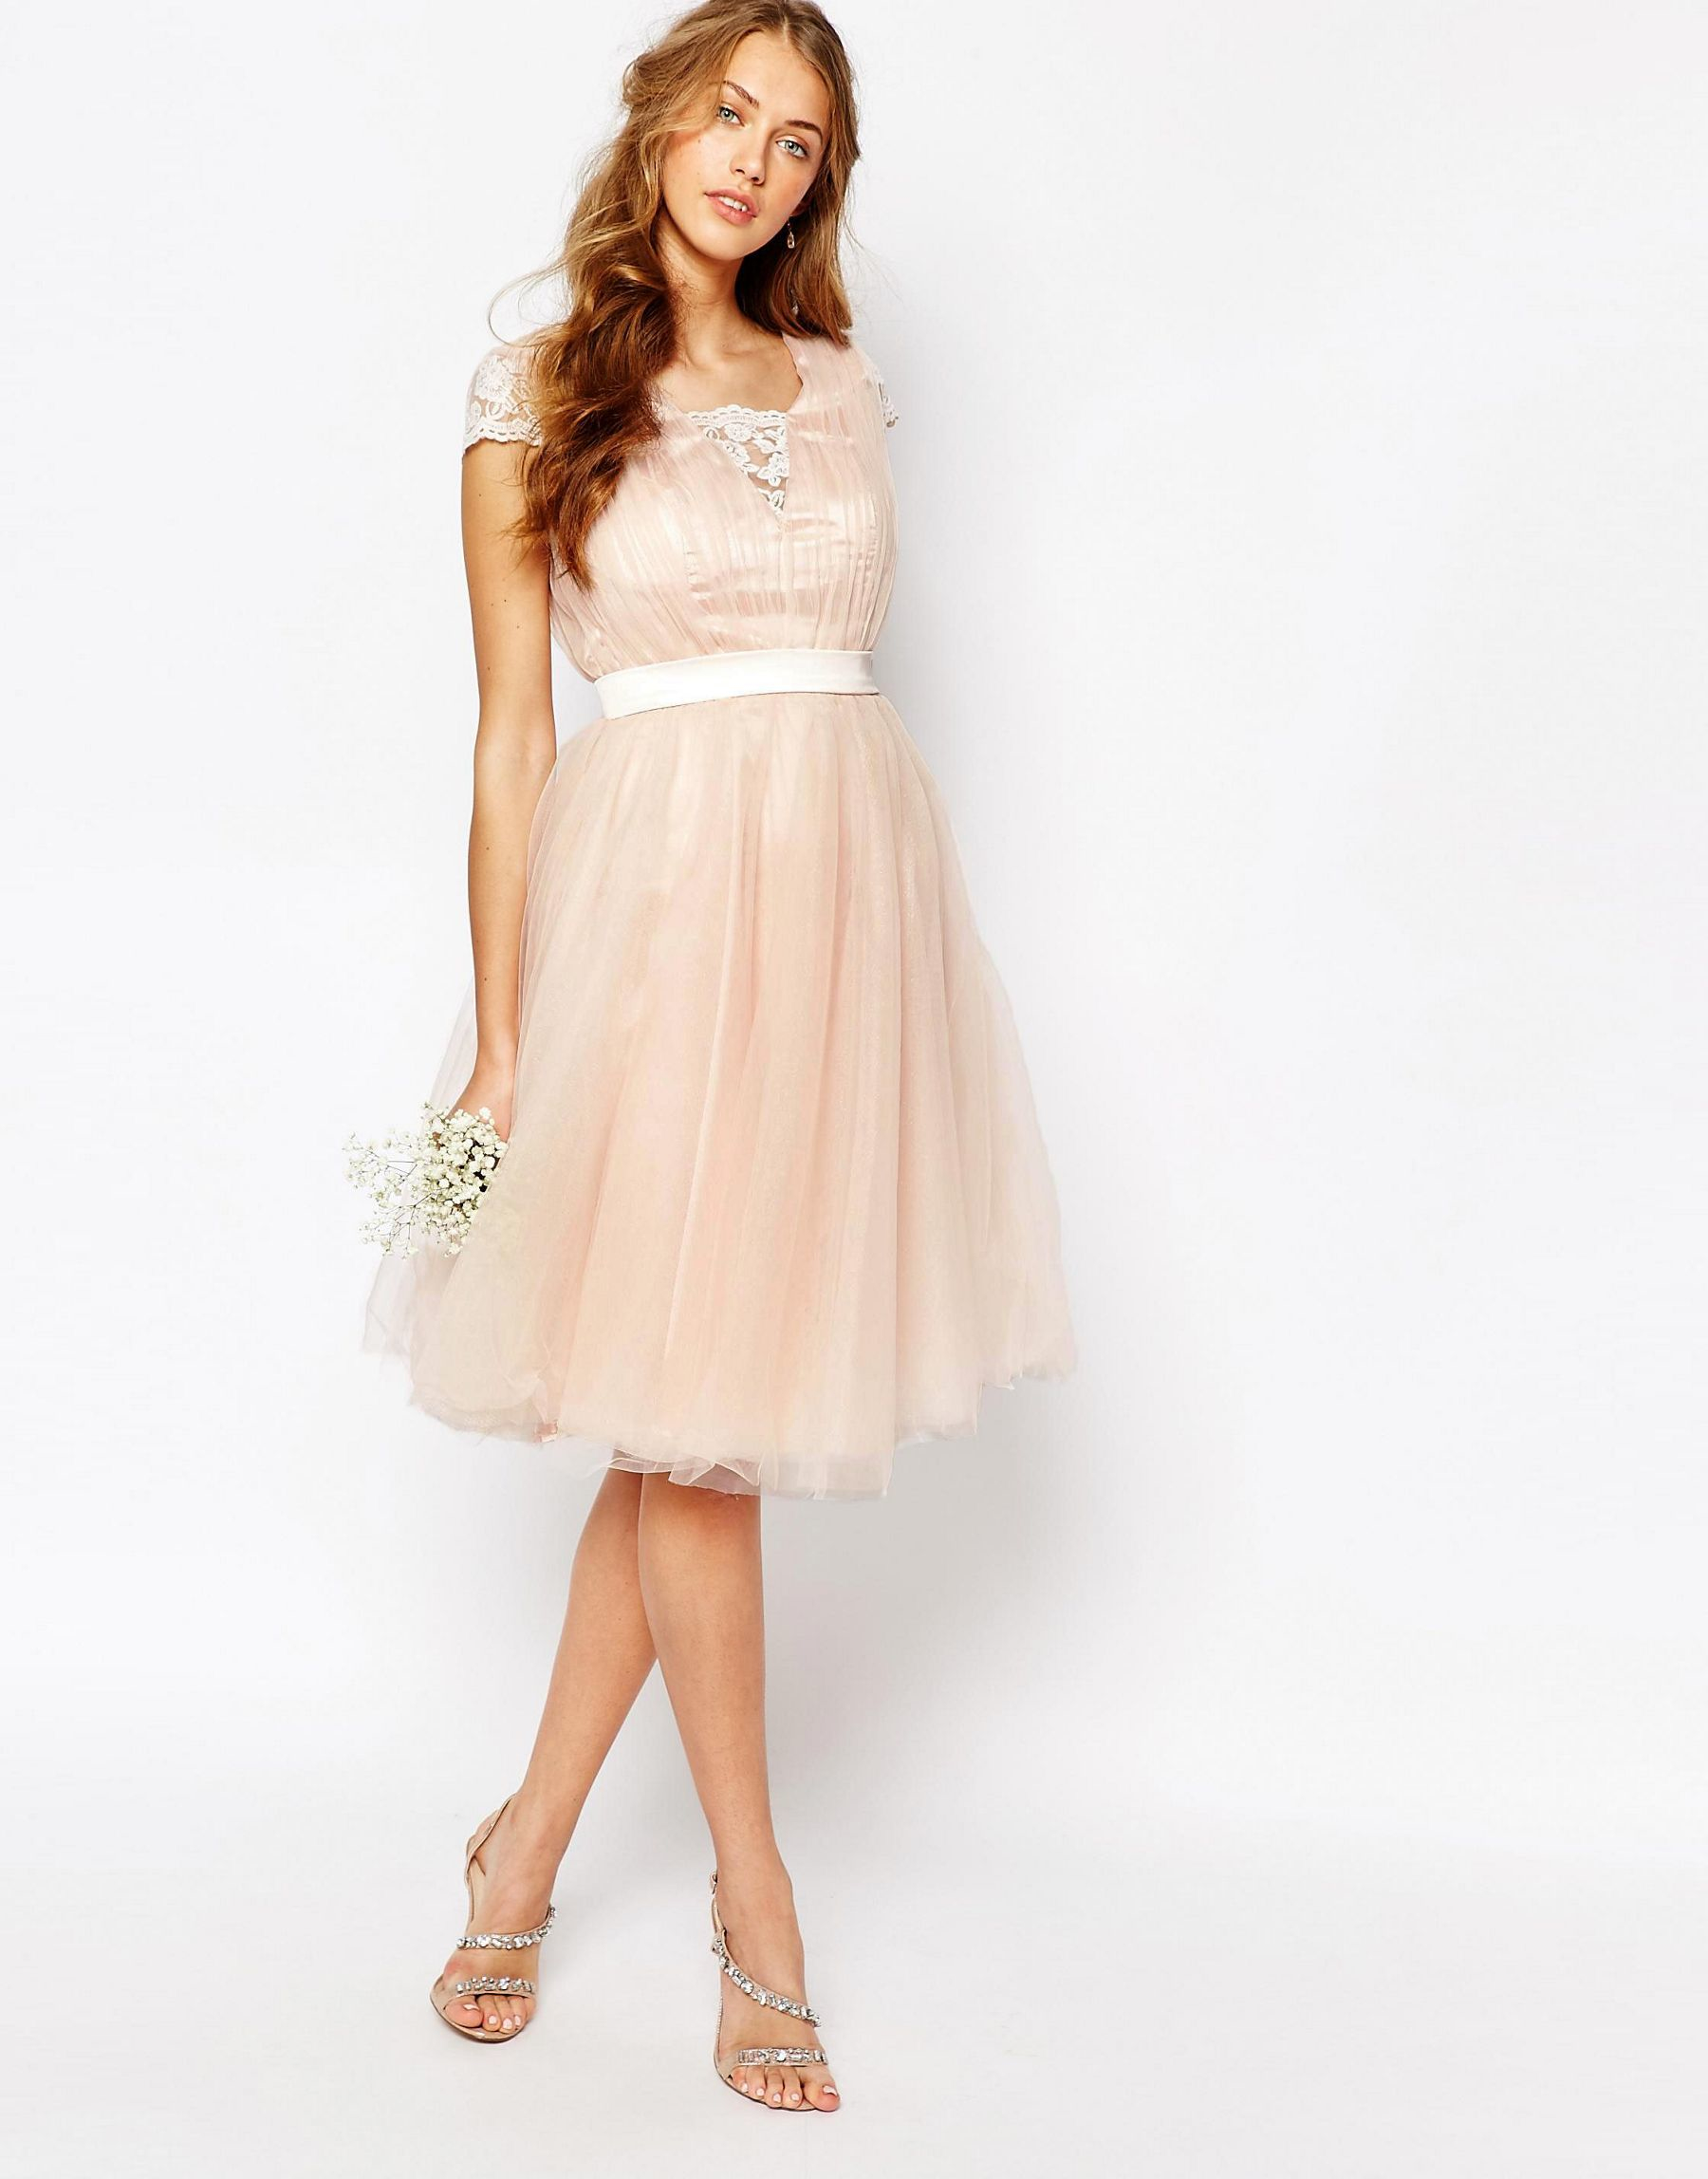 Lyst - Chi Chi London Midi Dress With Tulle Skirt And Lace Back in Pink 0c6d90e36ee